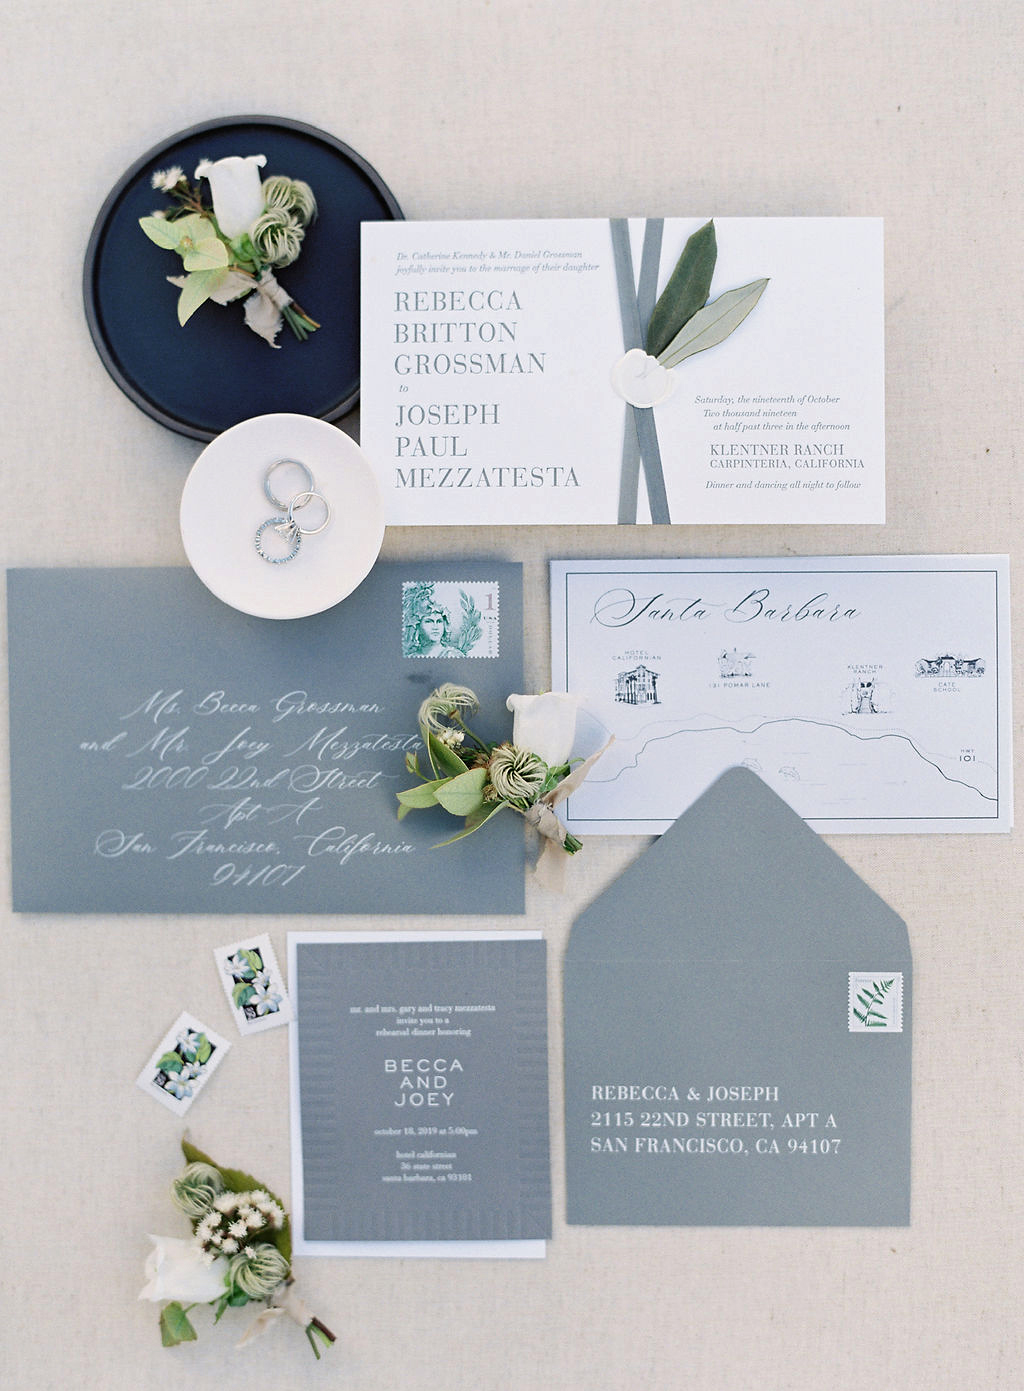 becca joey wedding invites stationery